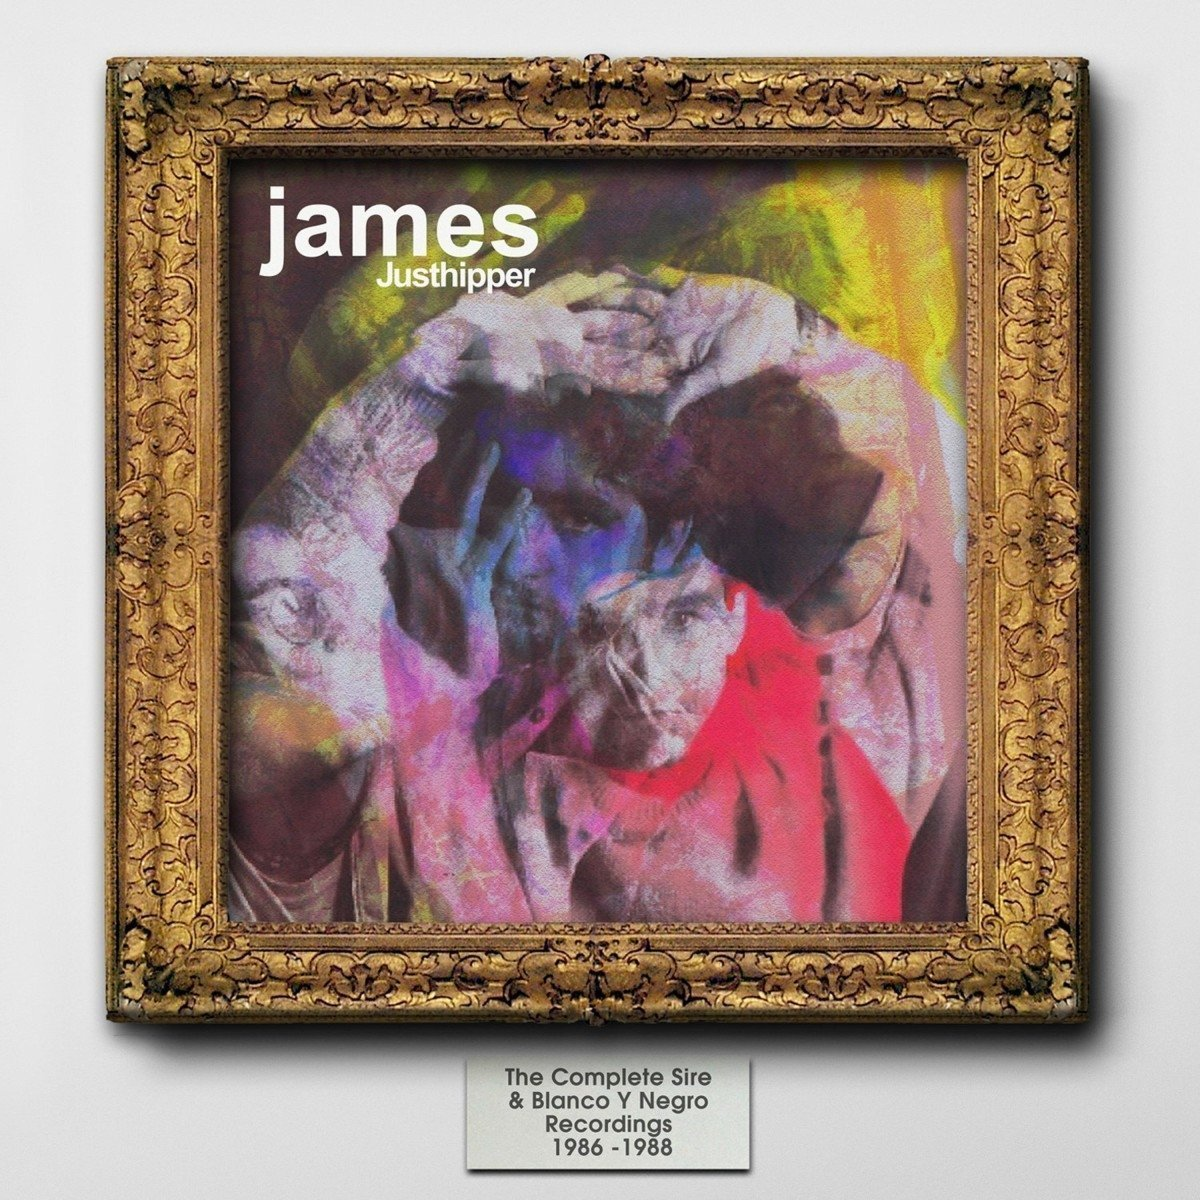 James / Justhipper: Complete Sire & Blanc Y Negro Recordings 1986-1988